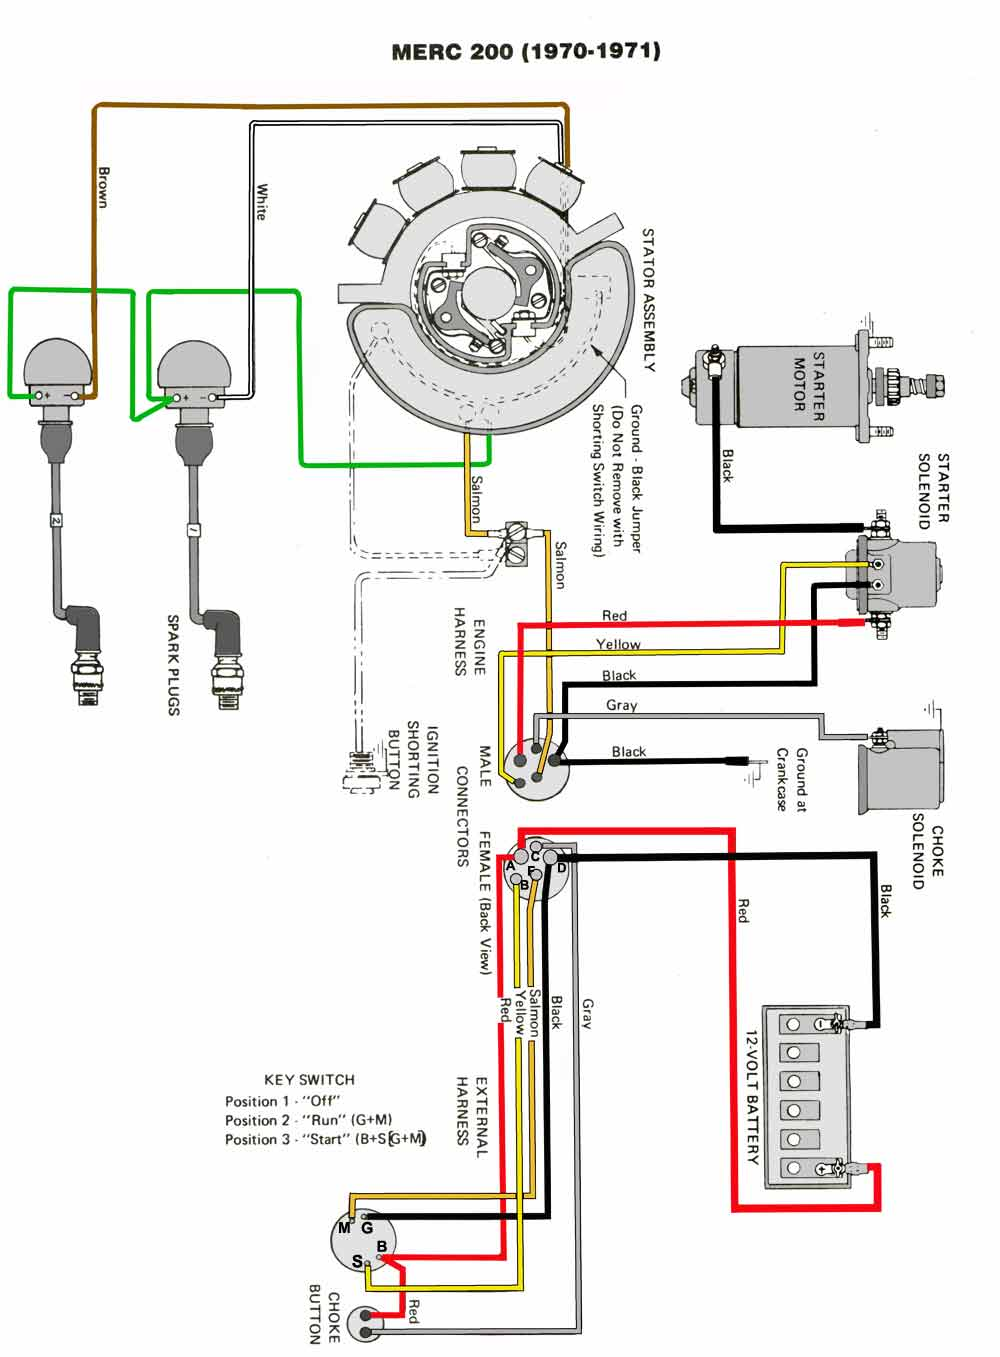 hight resolution of 75 mercury optimax wiring diagram wiring diagrams scematic ignition wiring diagram 75 mercury optimax wiring diagram